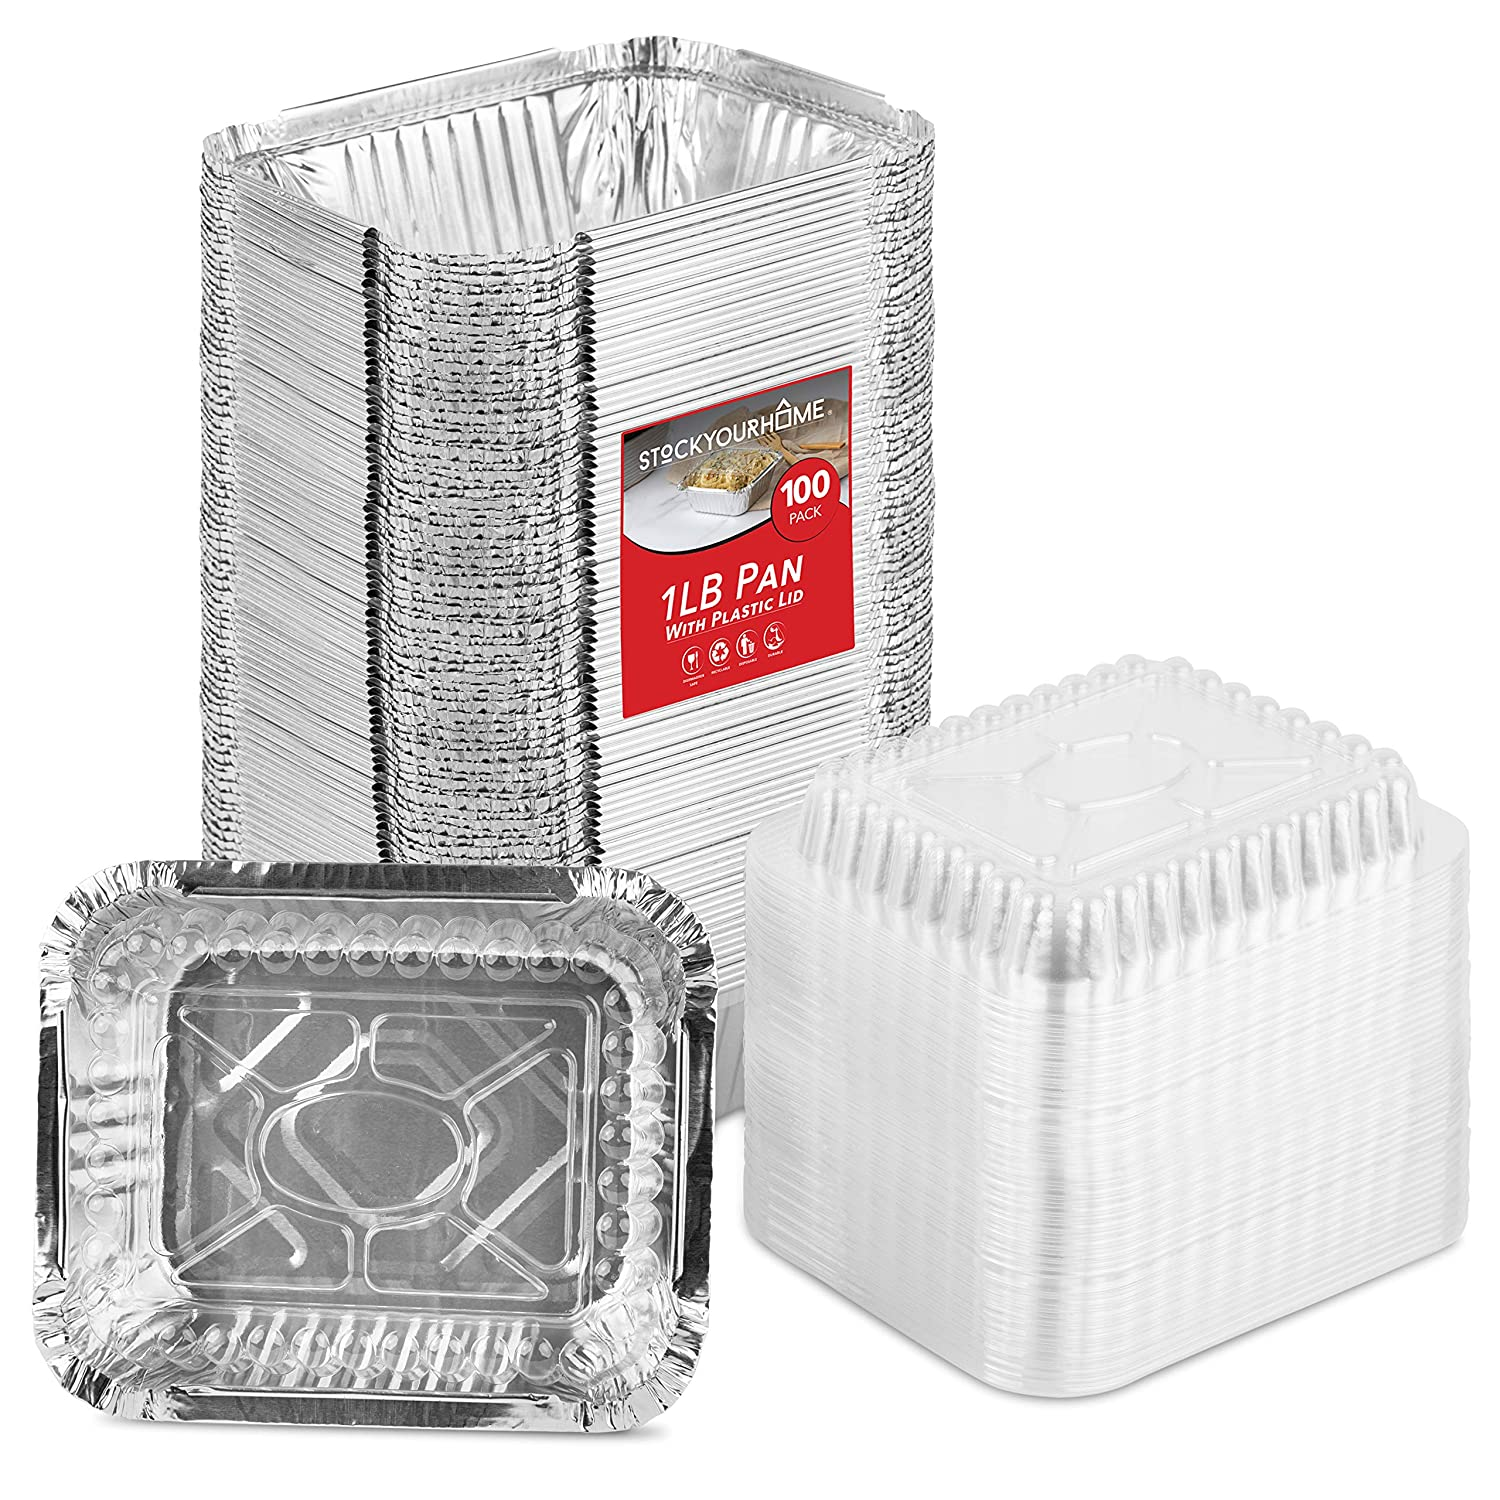 Stock Your Home 1 Lb Aluminum Disposable Cookware with Lids (100 Pack) - Foil Pans Plastic Lids - Disposable & Recyclable Takeout Trays with Lids - Food Containers for Restaurants, Catering, Delis